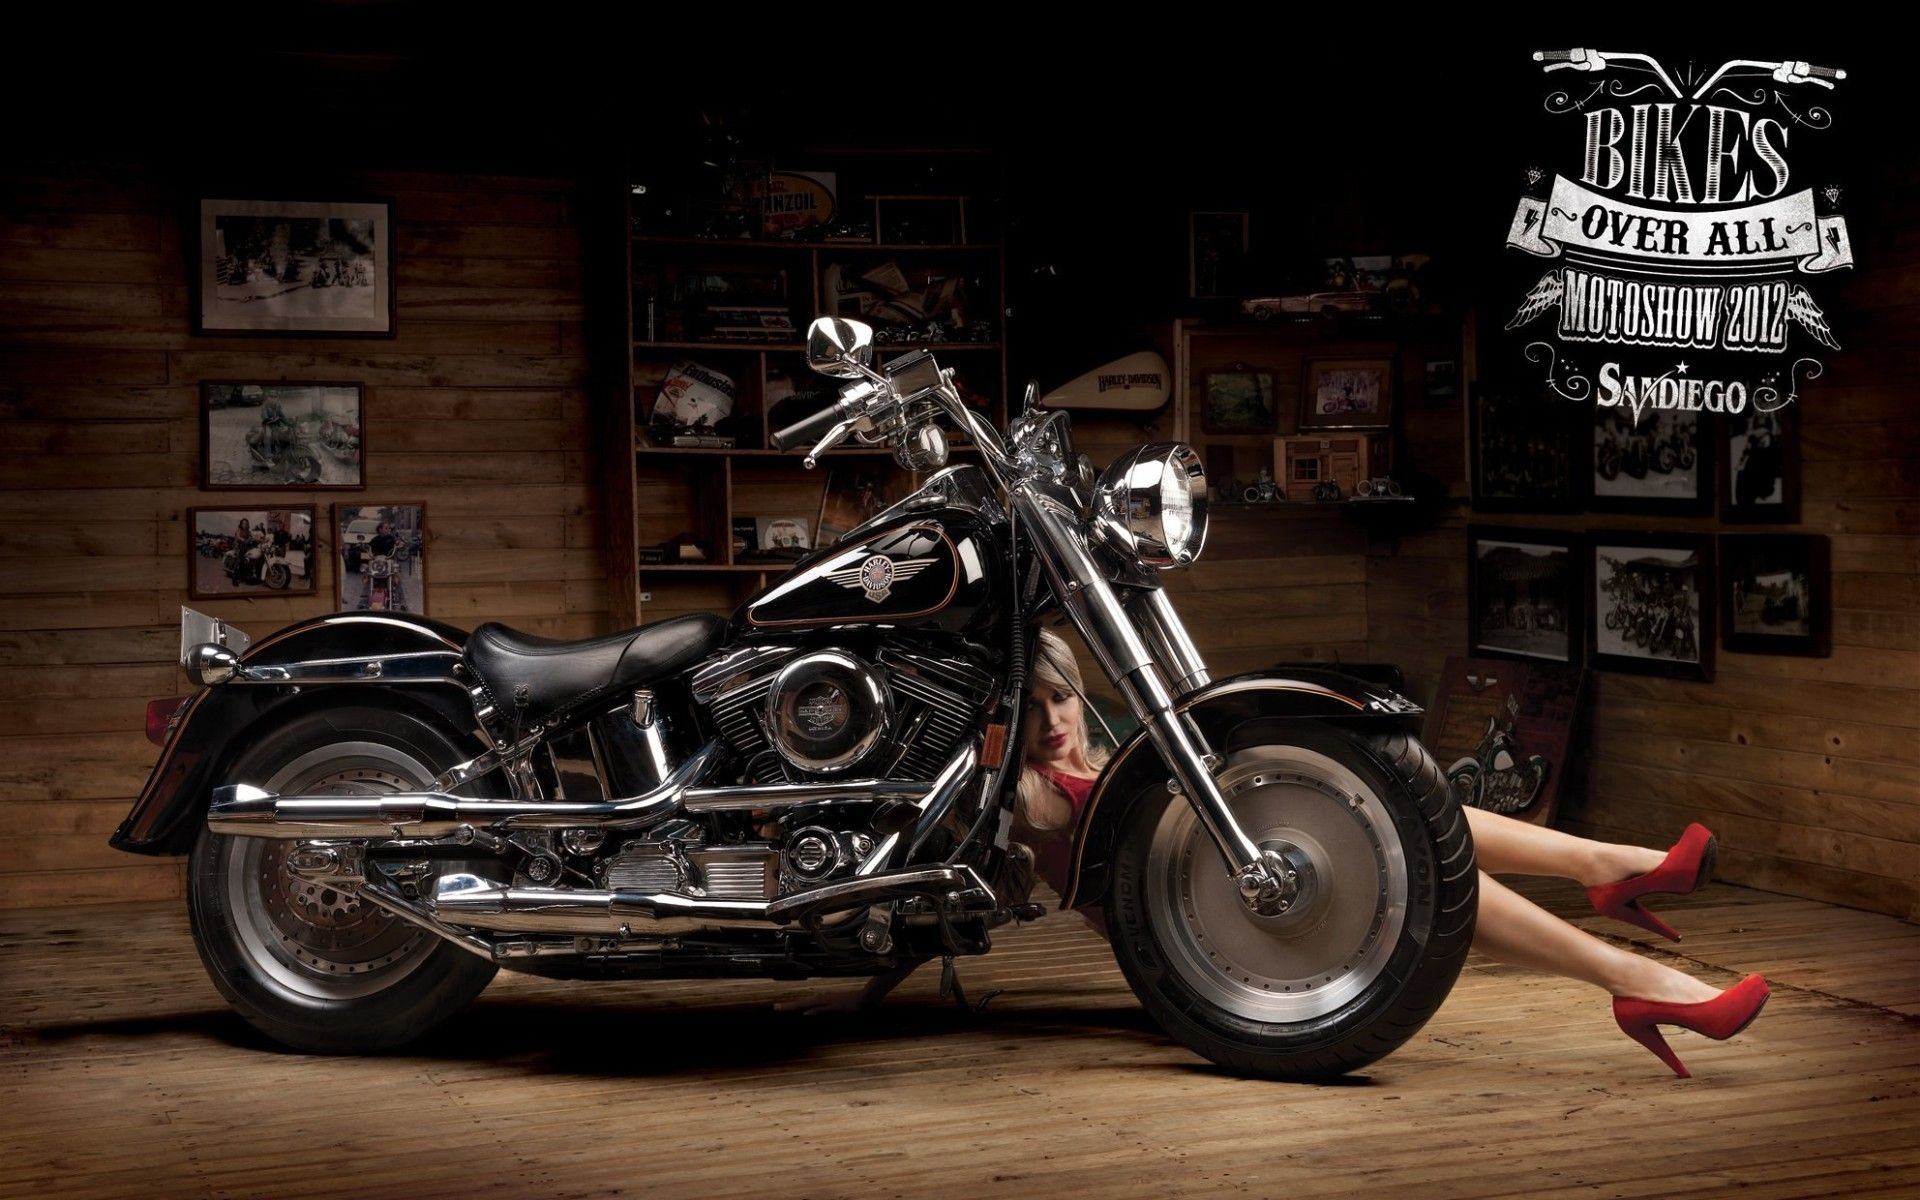 Harley davidson bike harley davidson classic hd wallpaper harley - Its Amazing Can Ride This Bike Harley Davidson Wallpapers